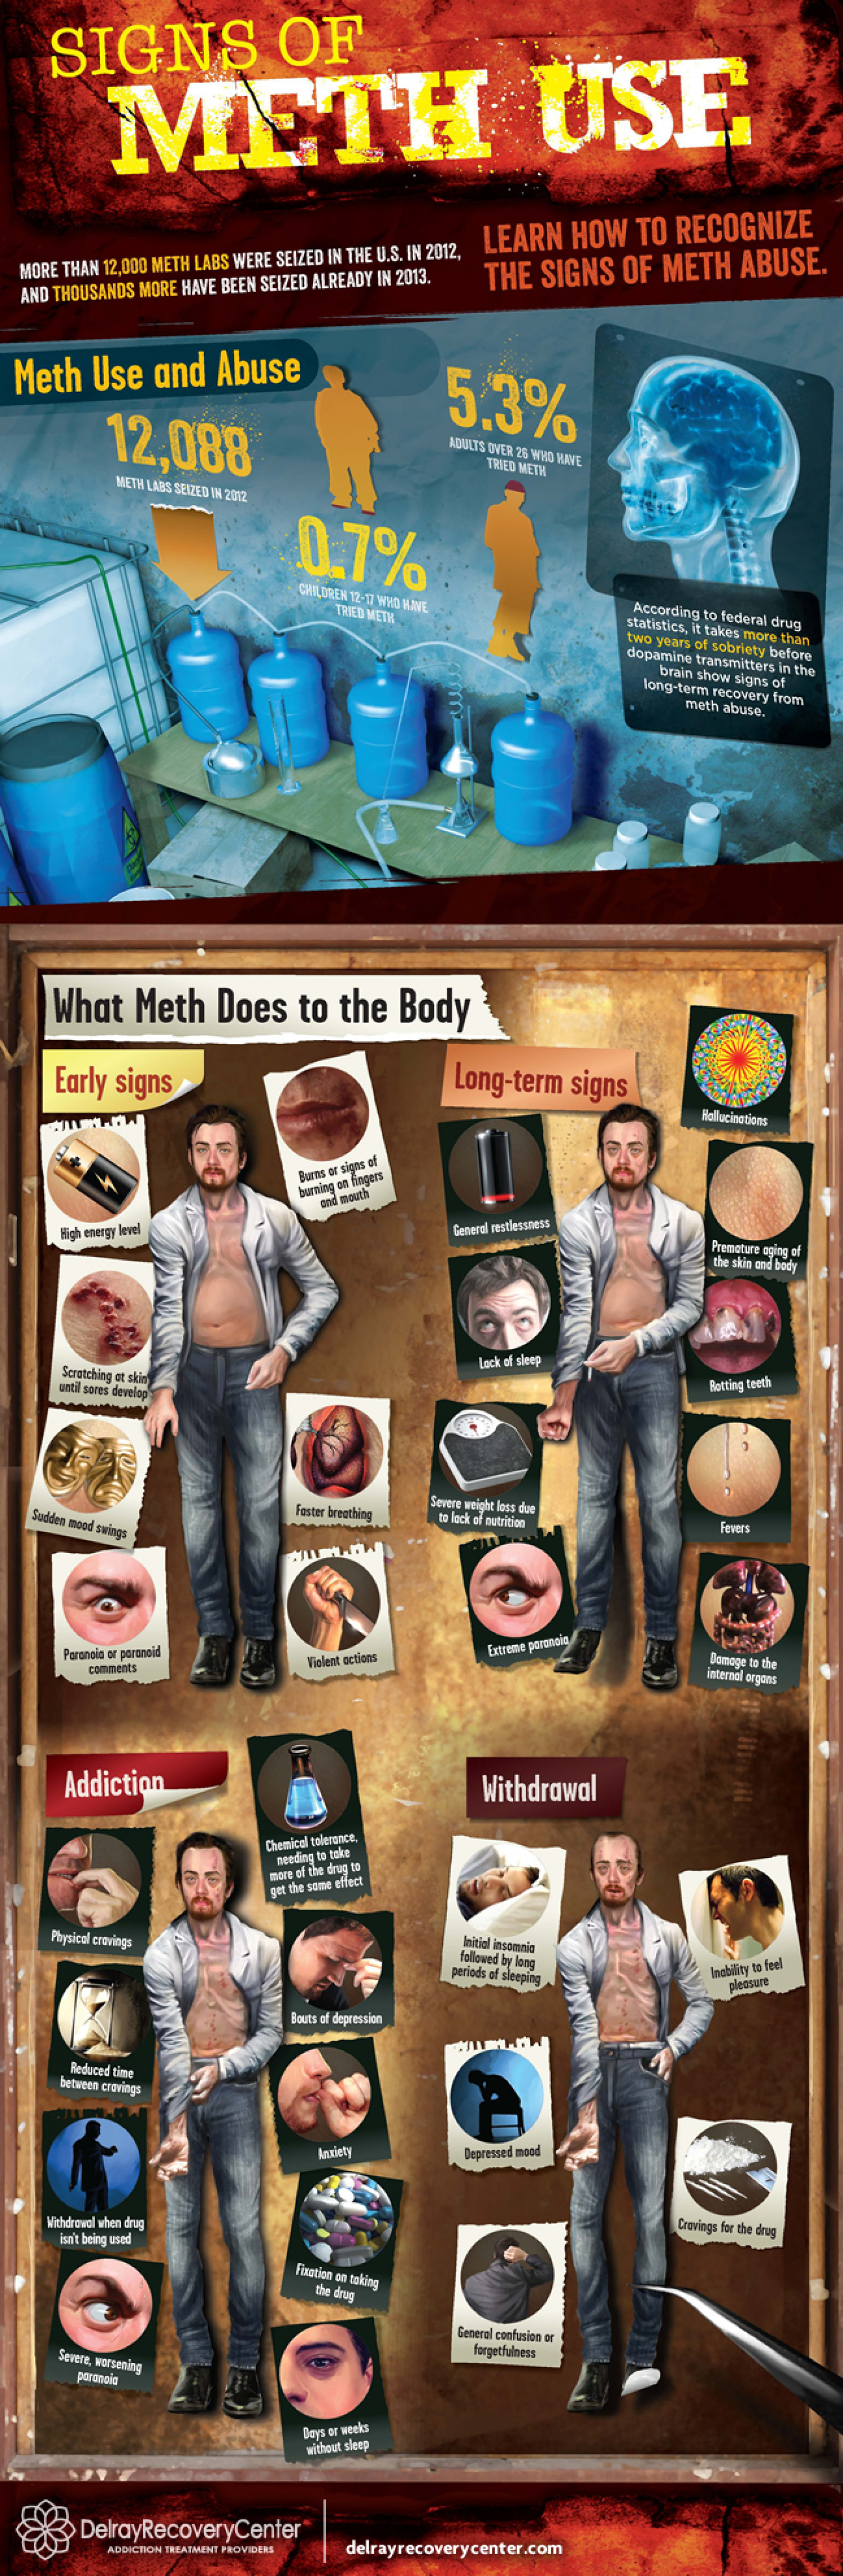 The Signs of Meth Use Infographic